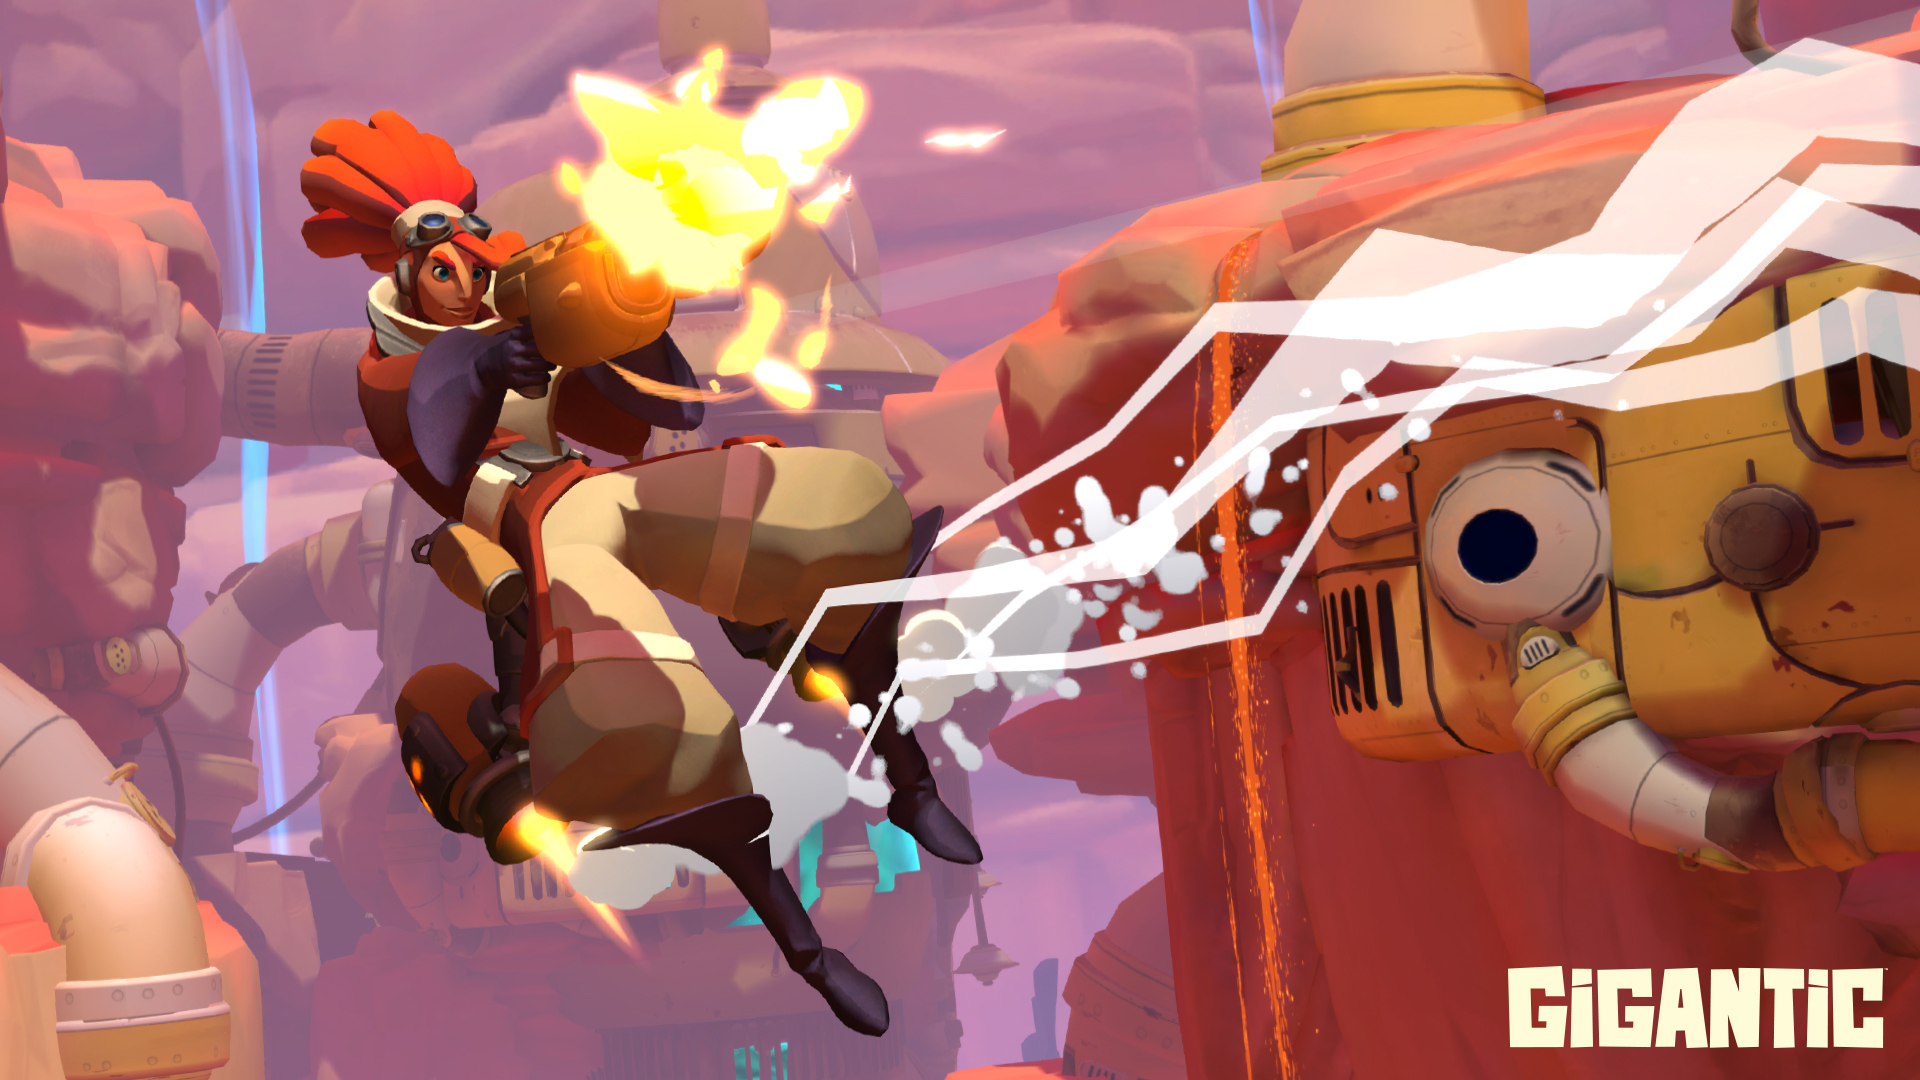 Gigantic Review Image 1